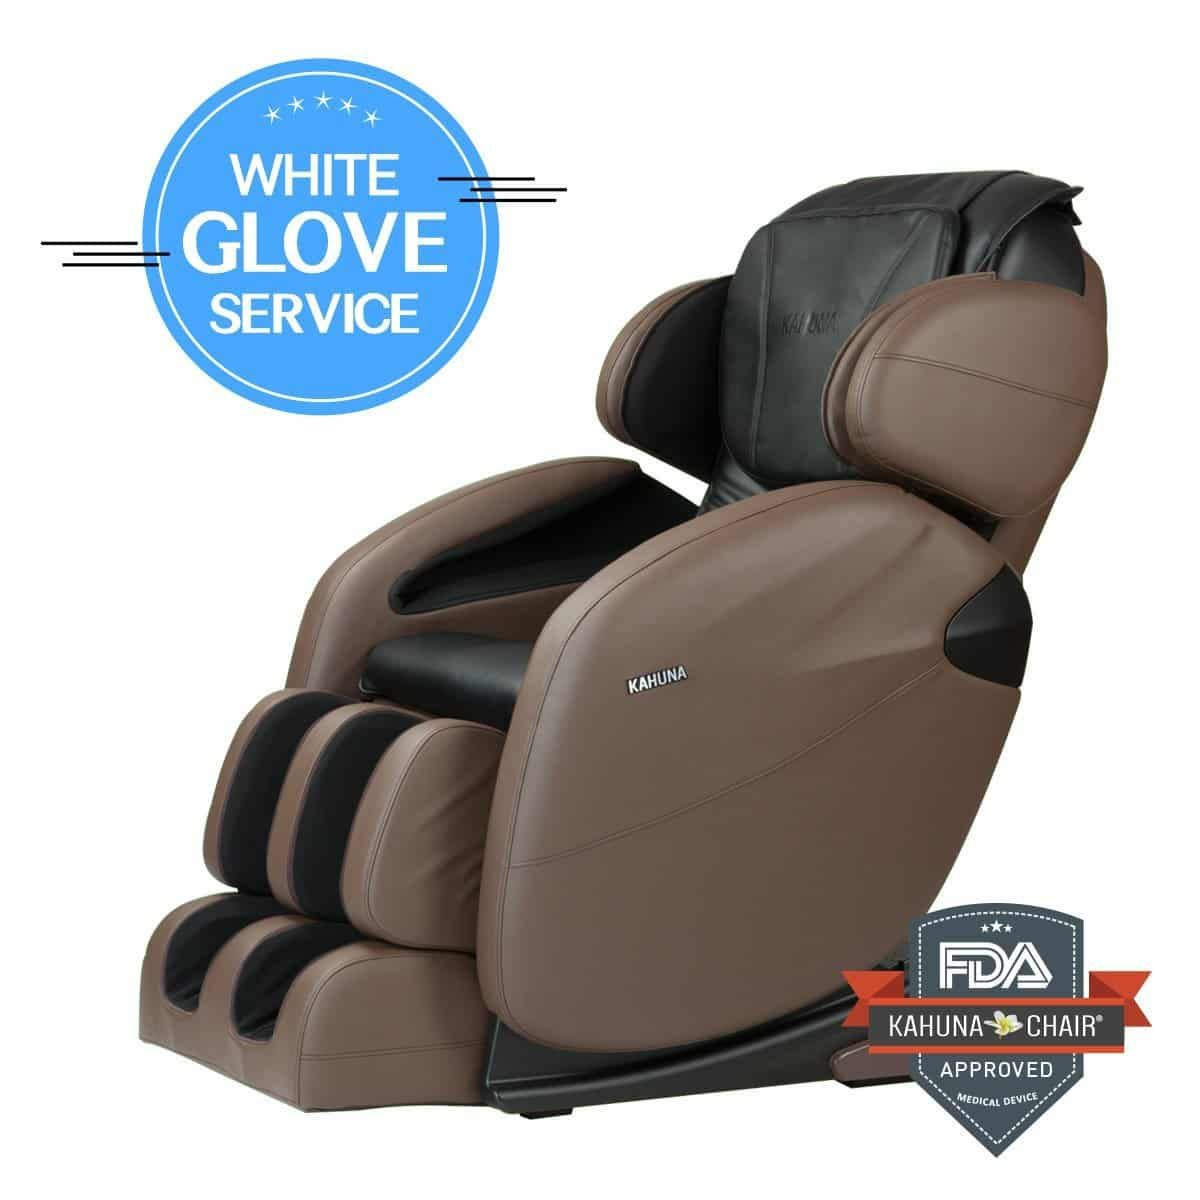 Top 10 Best Full Body Massage Chairs In 2020 Buyer S Guides Massage Chair Adult Bean Bag Chair Massage